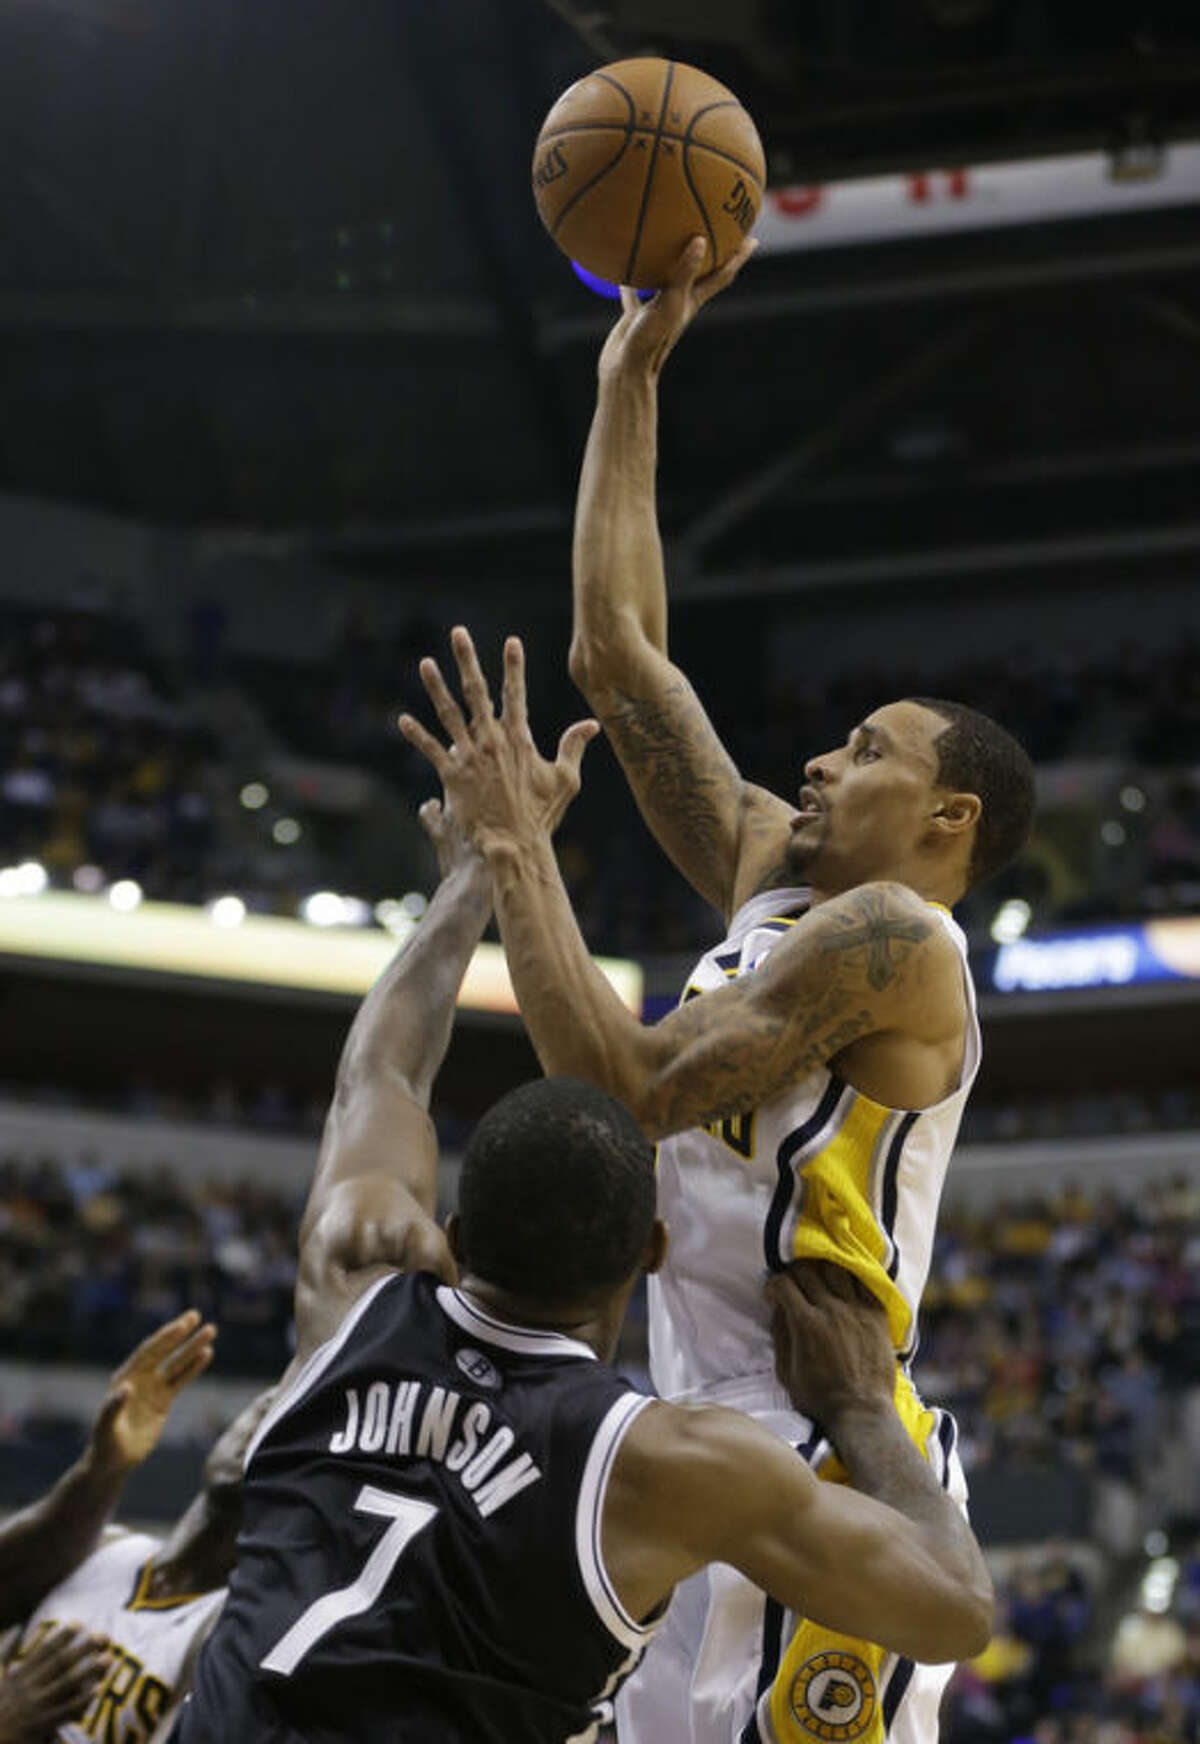 Indiana Pacers' George Hill (3) shoots over Brooklyn Nets' Joe Johnson (7) during the second half of an NBA basketball game Saturday, Dec. 28, 2013, in Indianapolis. Indiana defeated Brooklyn 105-91. (AP Photo/Darron Cummings)